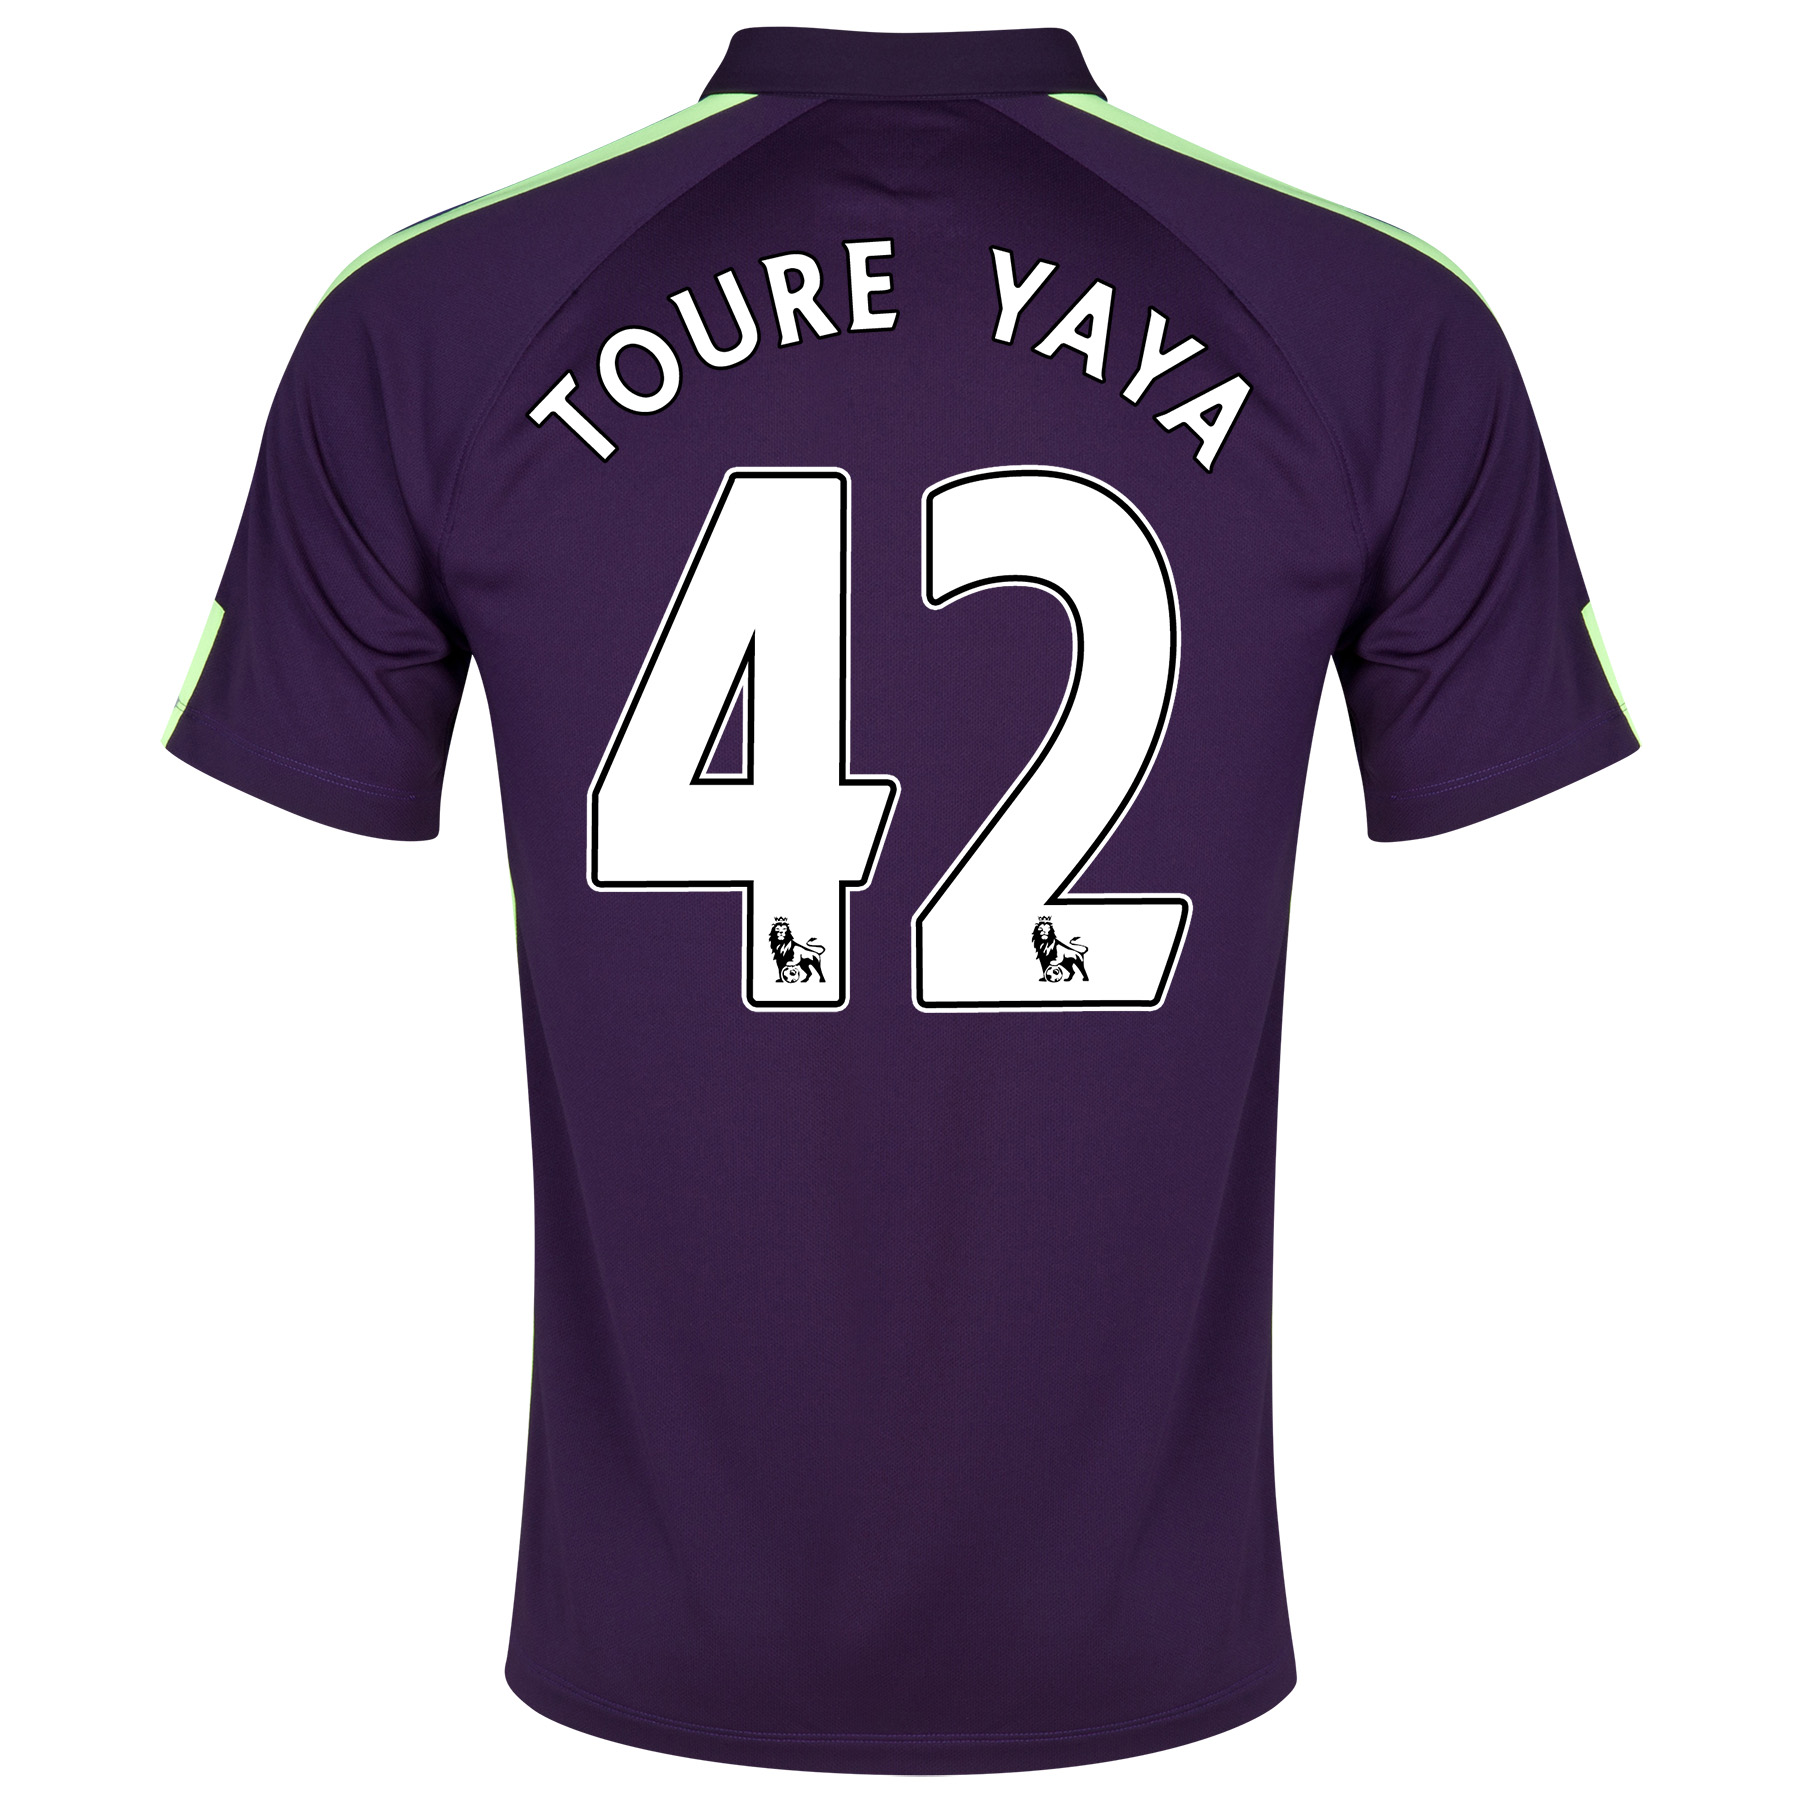 Manchester City Cup Away Shirt 2014/15 - Kids Purple with Toure Yaya 42 printing